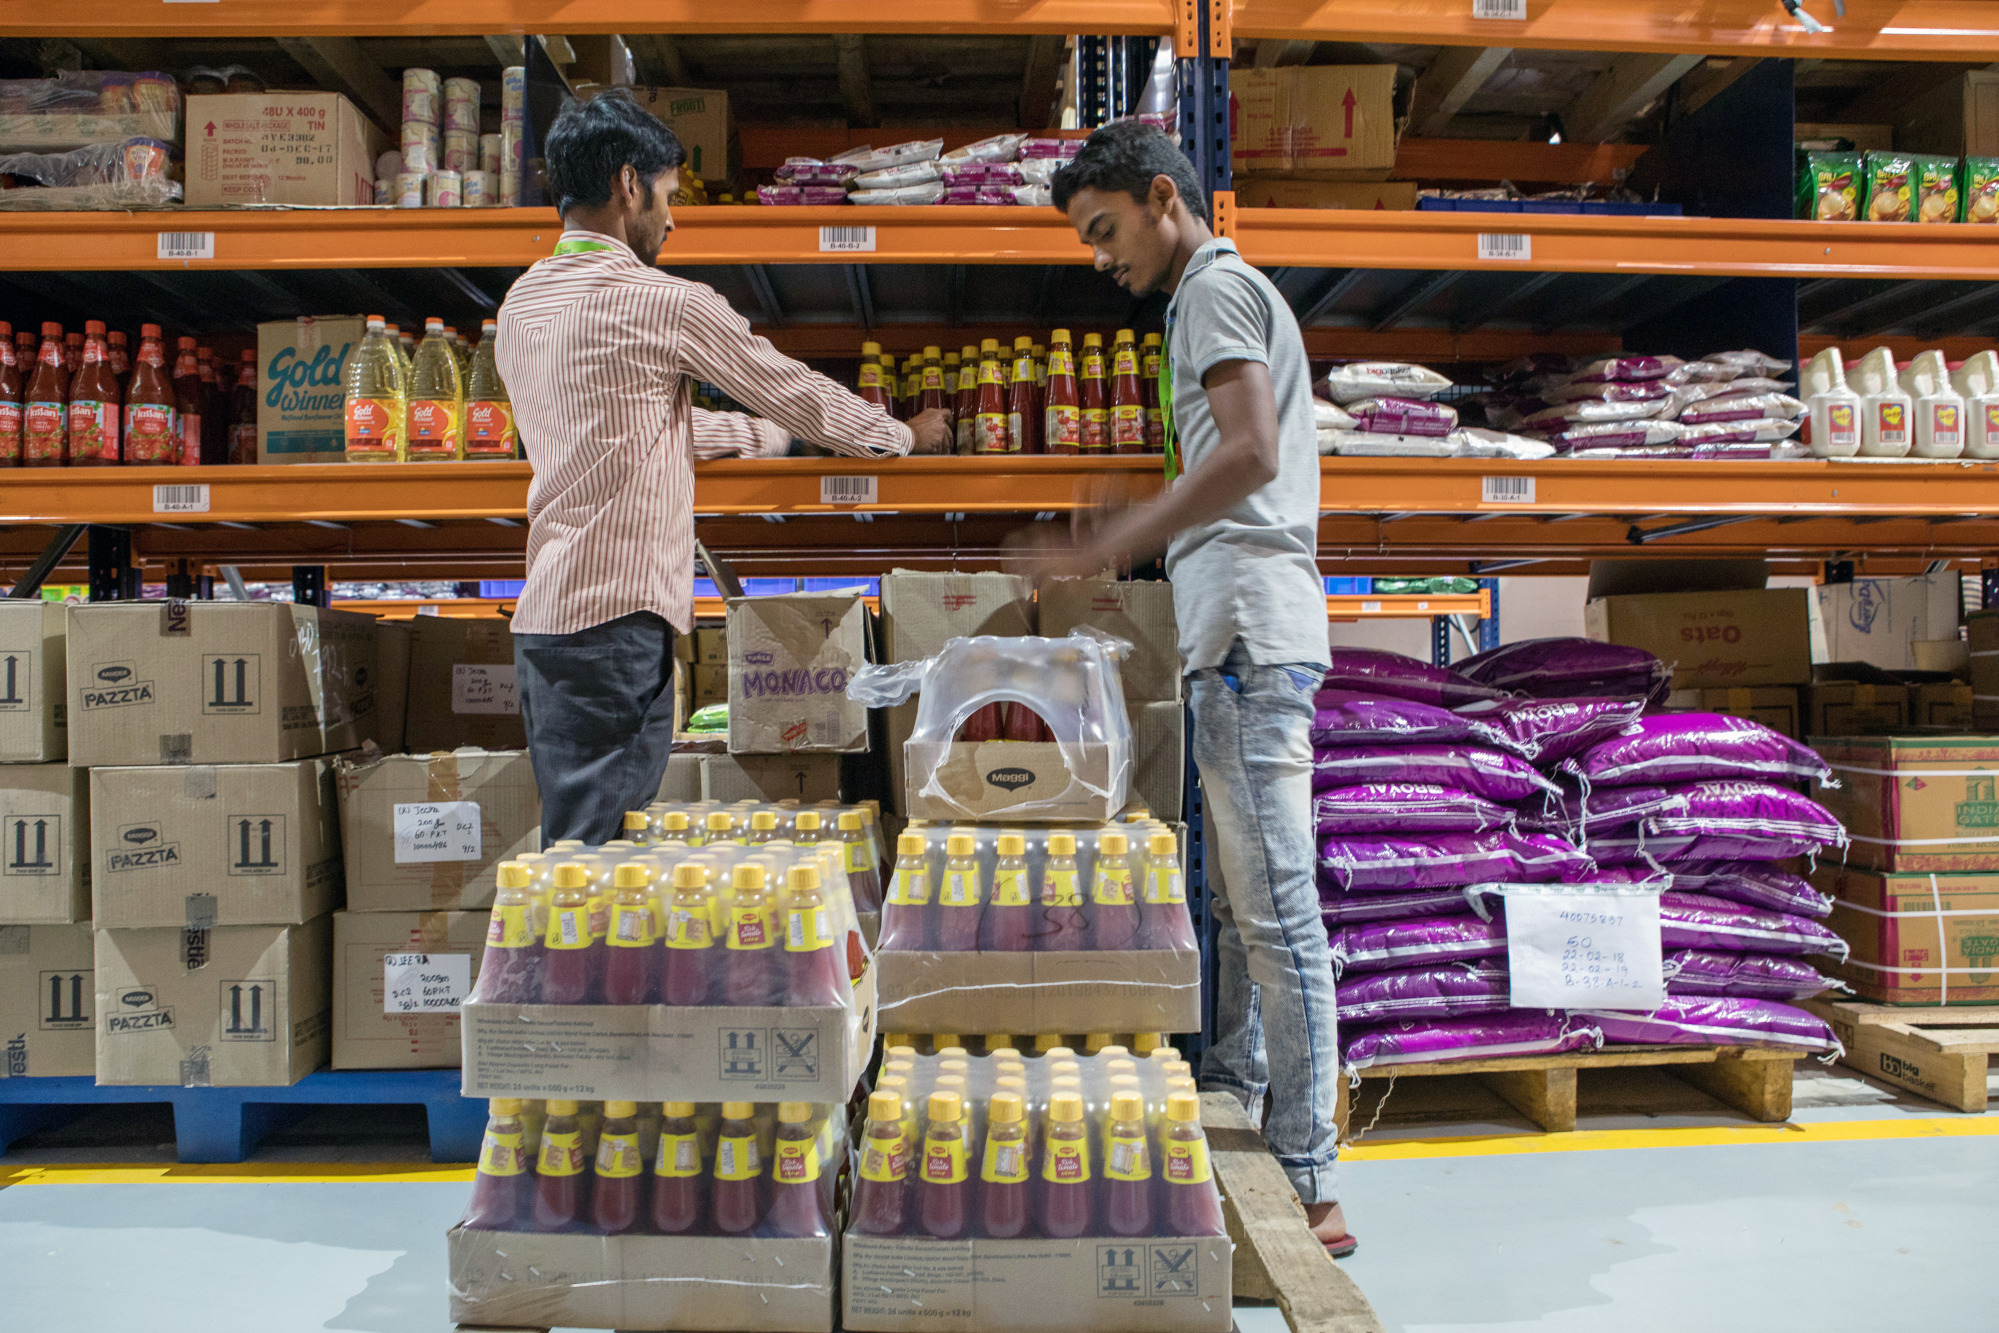 Workers unload crates of sauce at a BigBasket warehouse in Bengaluru, India, in 2018.